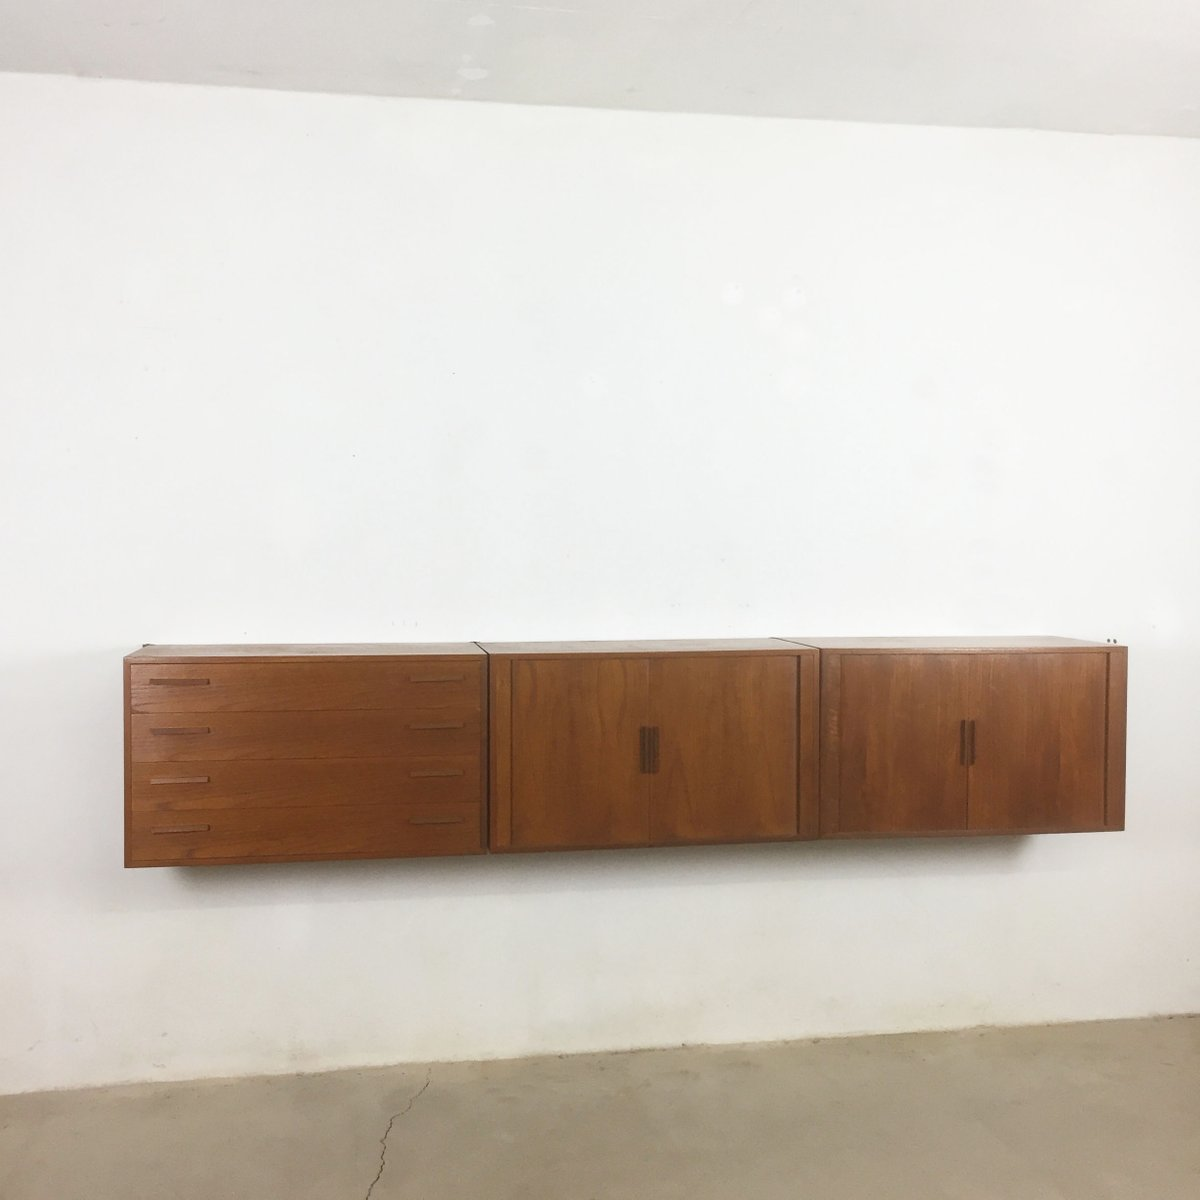 h ngendes teak sideboard von kai kristiansen f r feldballes mobelfabrik 1960er bei pamono kaufen. Black Bedroom Furniture Sets. Home Design Ideas